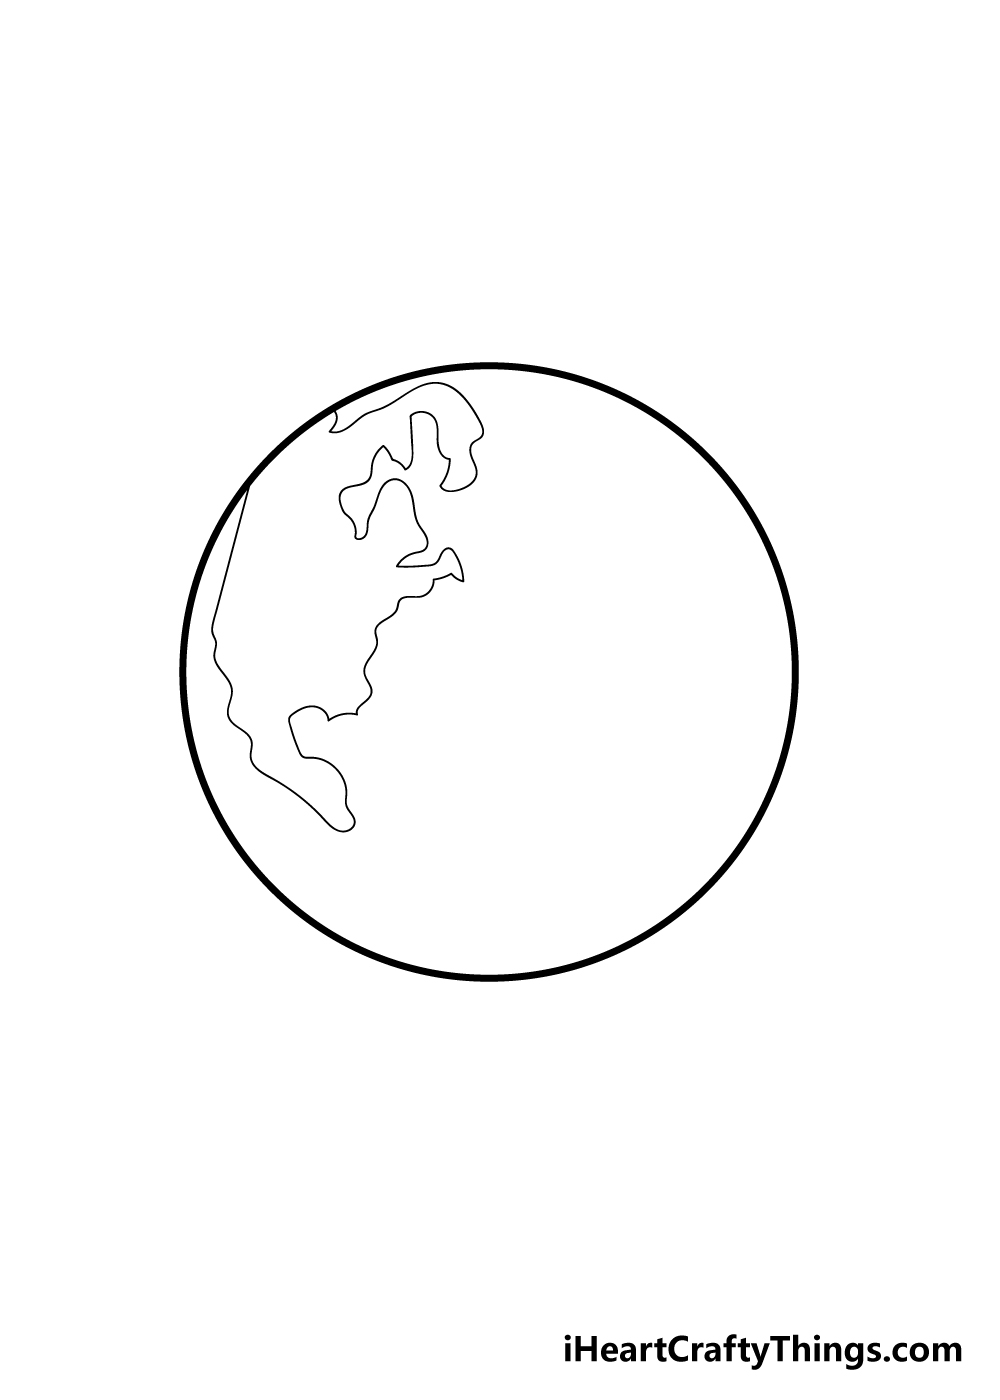 earth drawing step 2